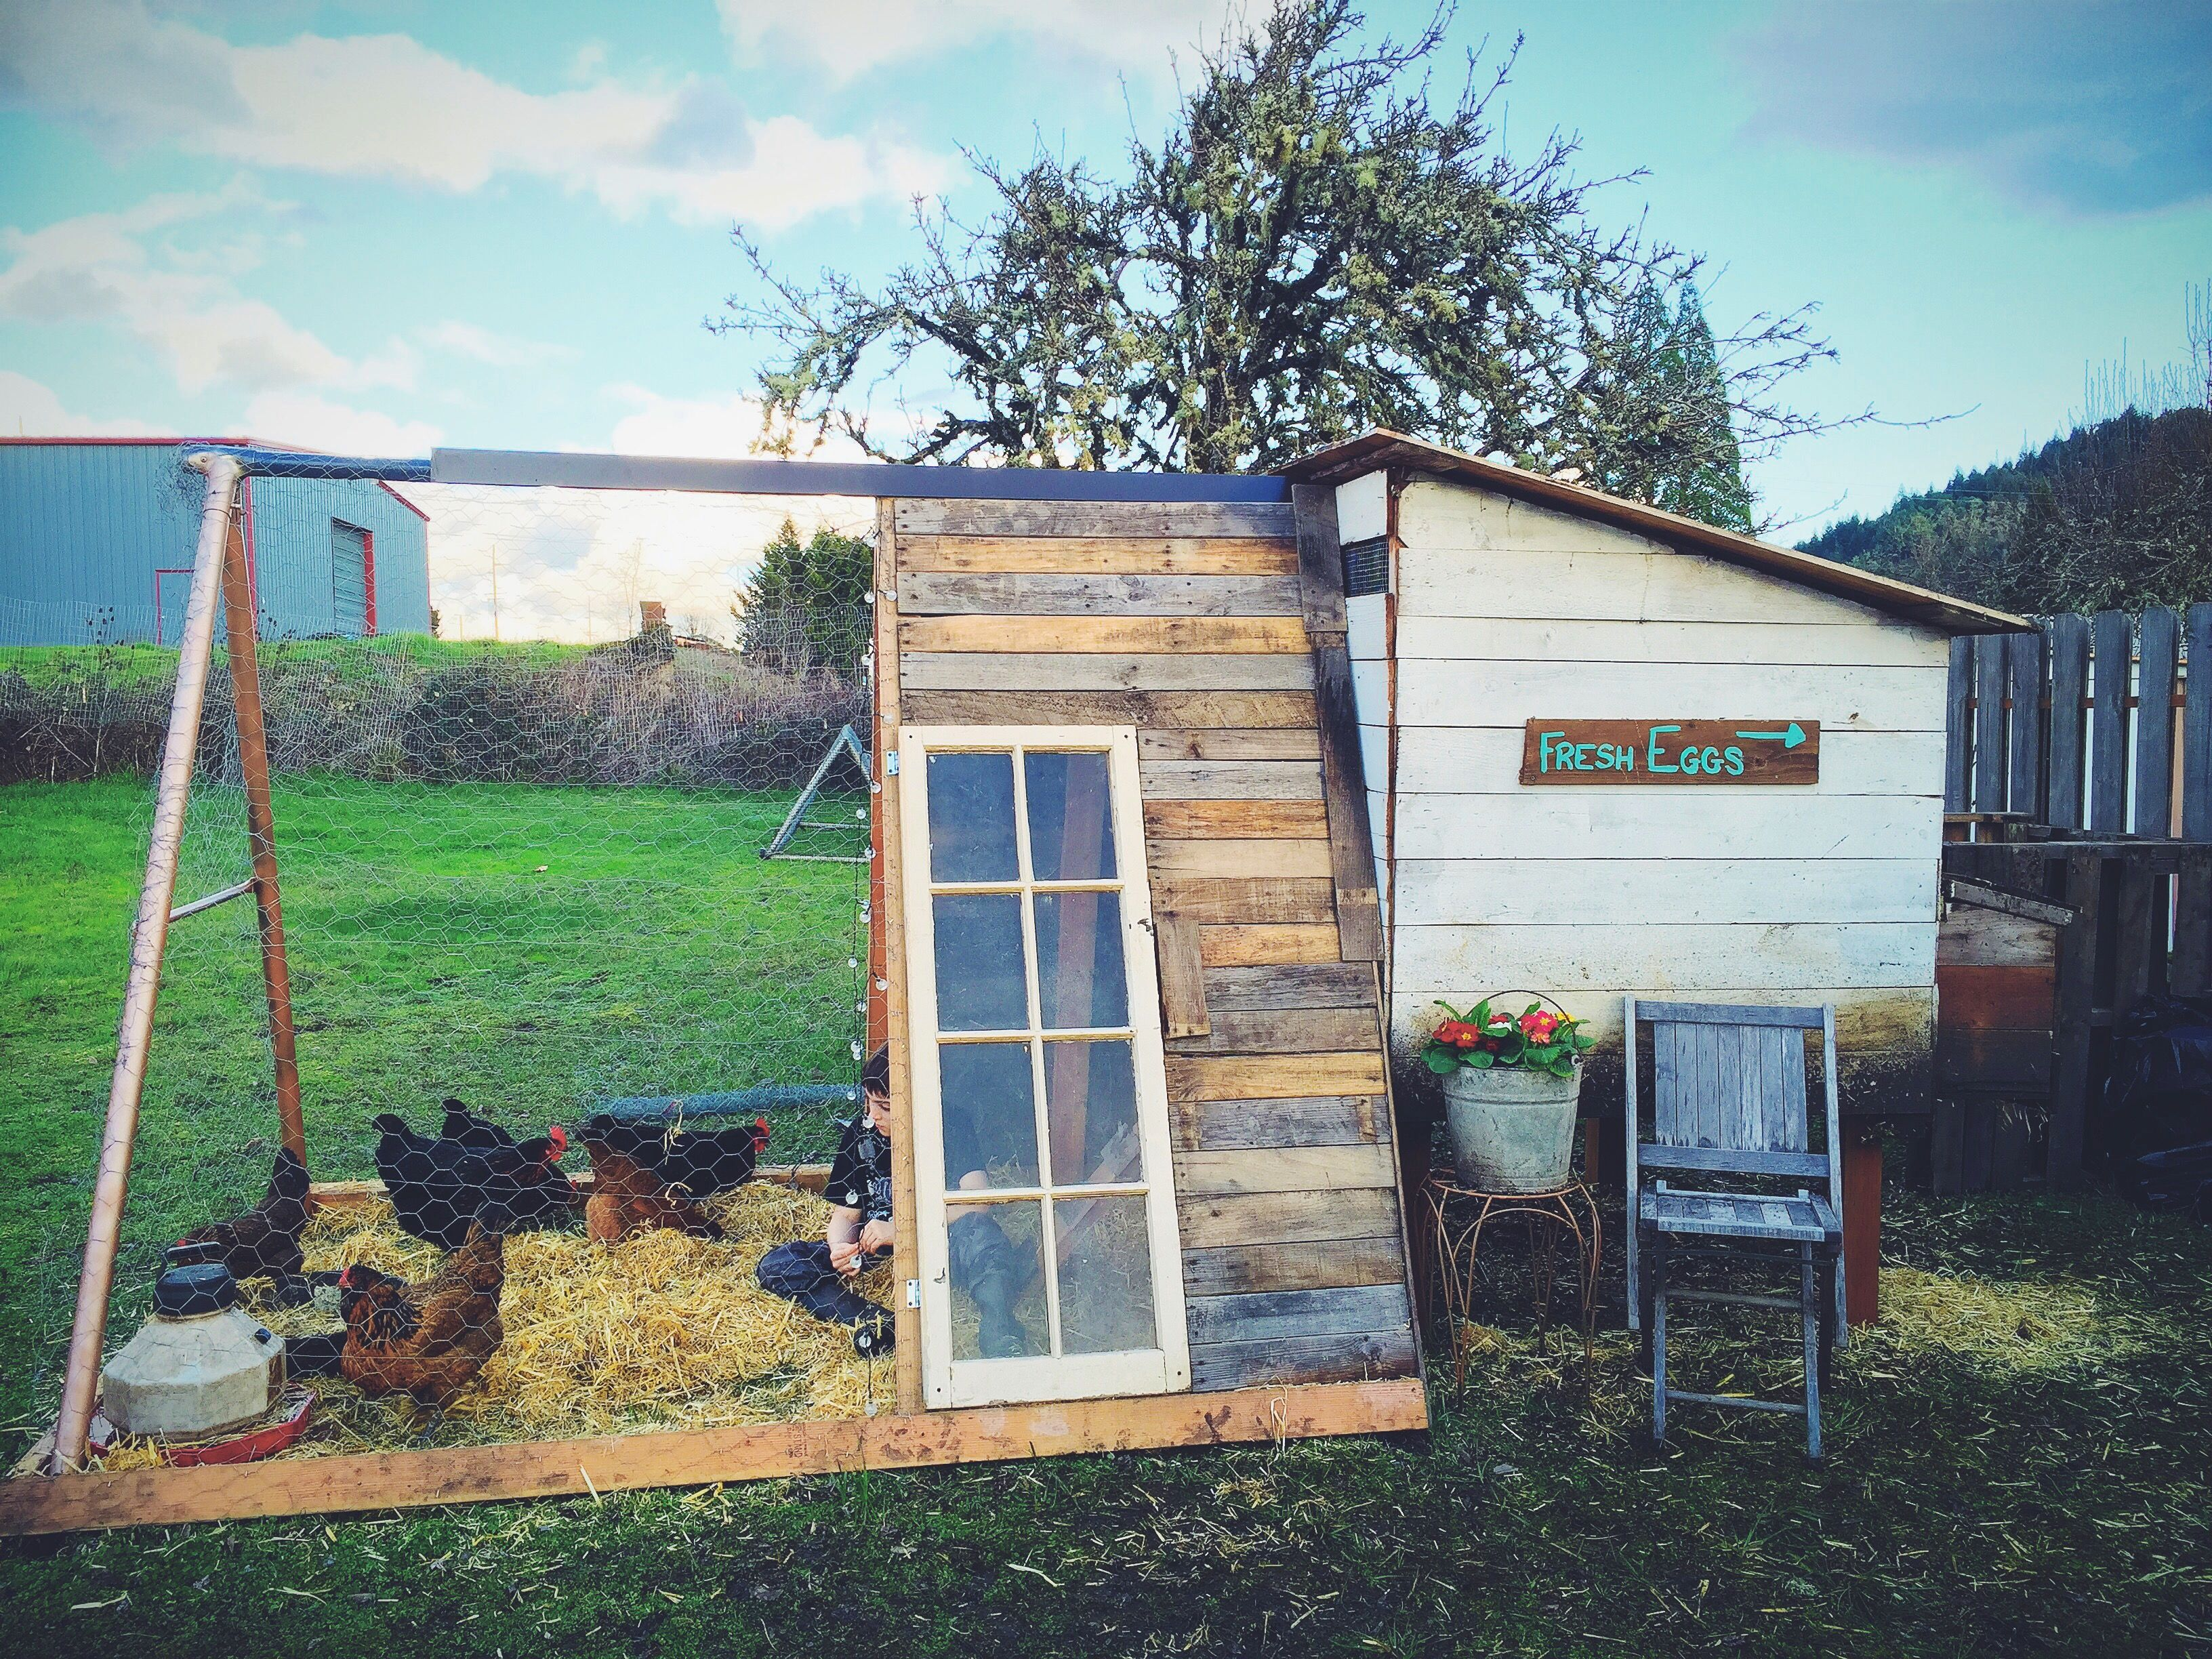 A Frame Coop Recycled Pallets Window And Old Metal Swingset